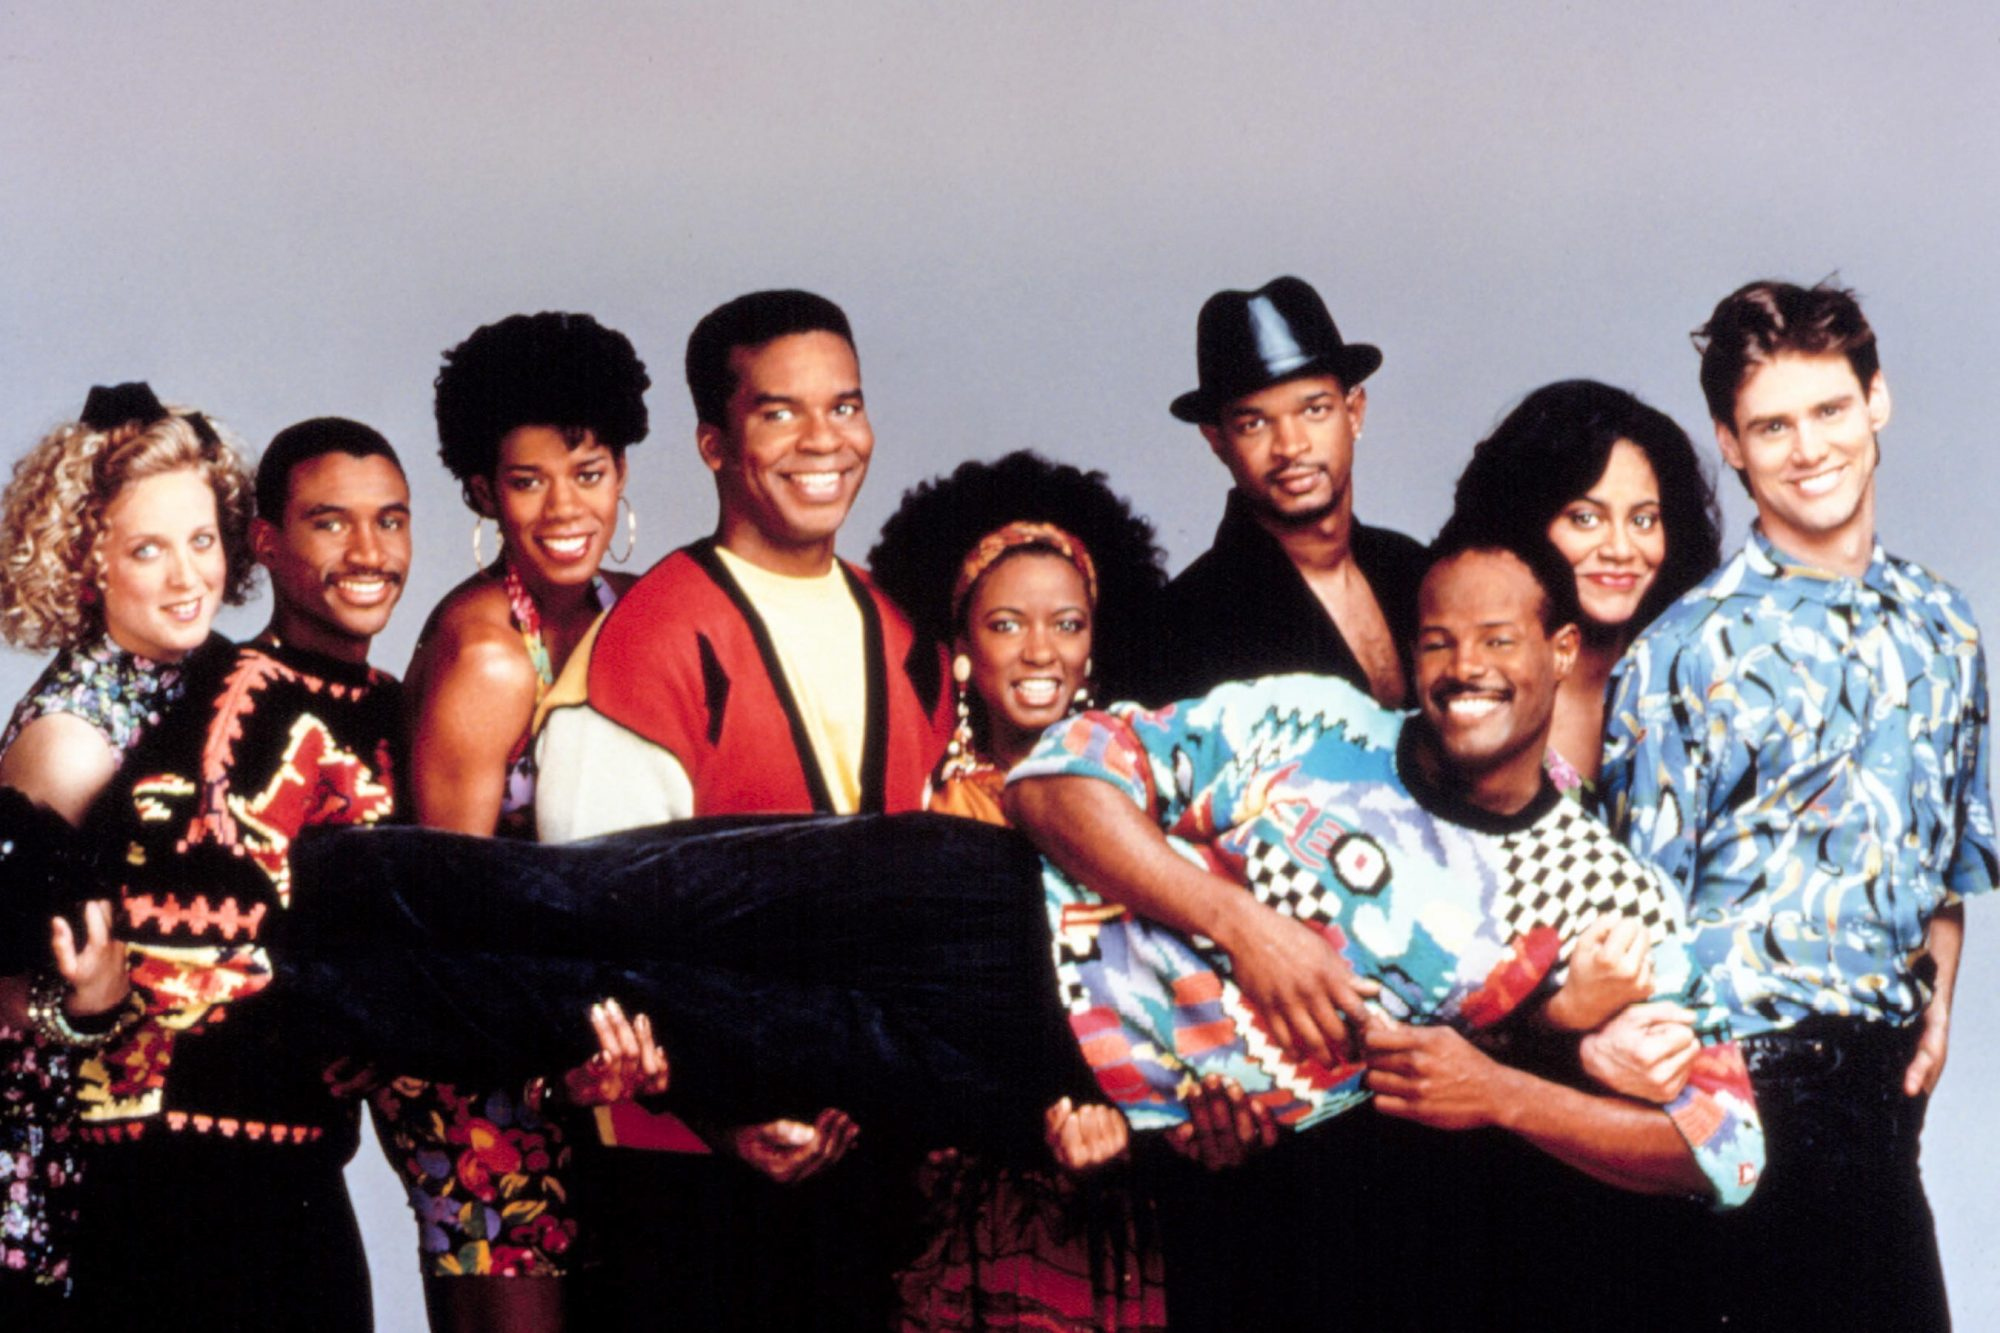 IN LIVING COLOR, Kelly Coffield, Tommy Davidson, Kim Wayans, David Alan Grier, Damon Wayans, Kim Col